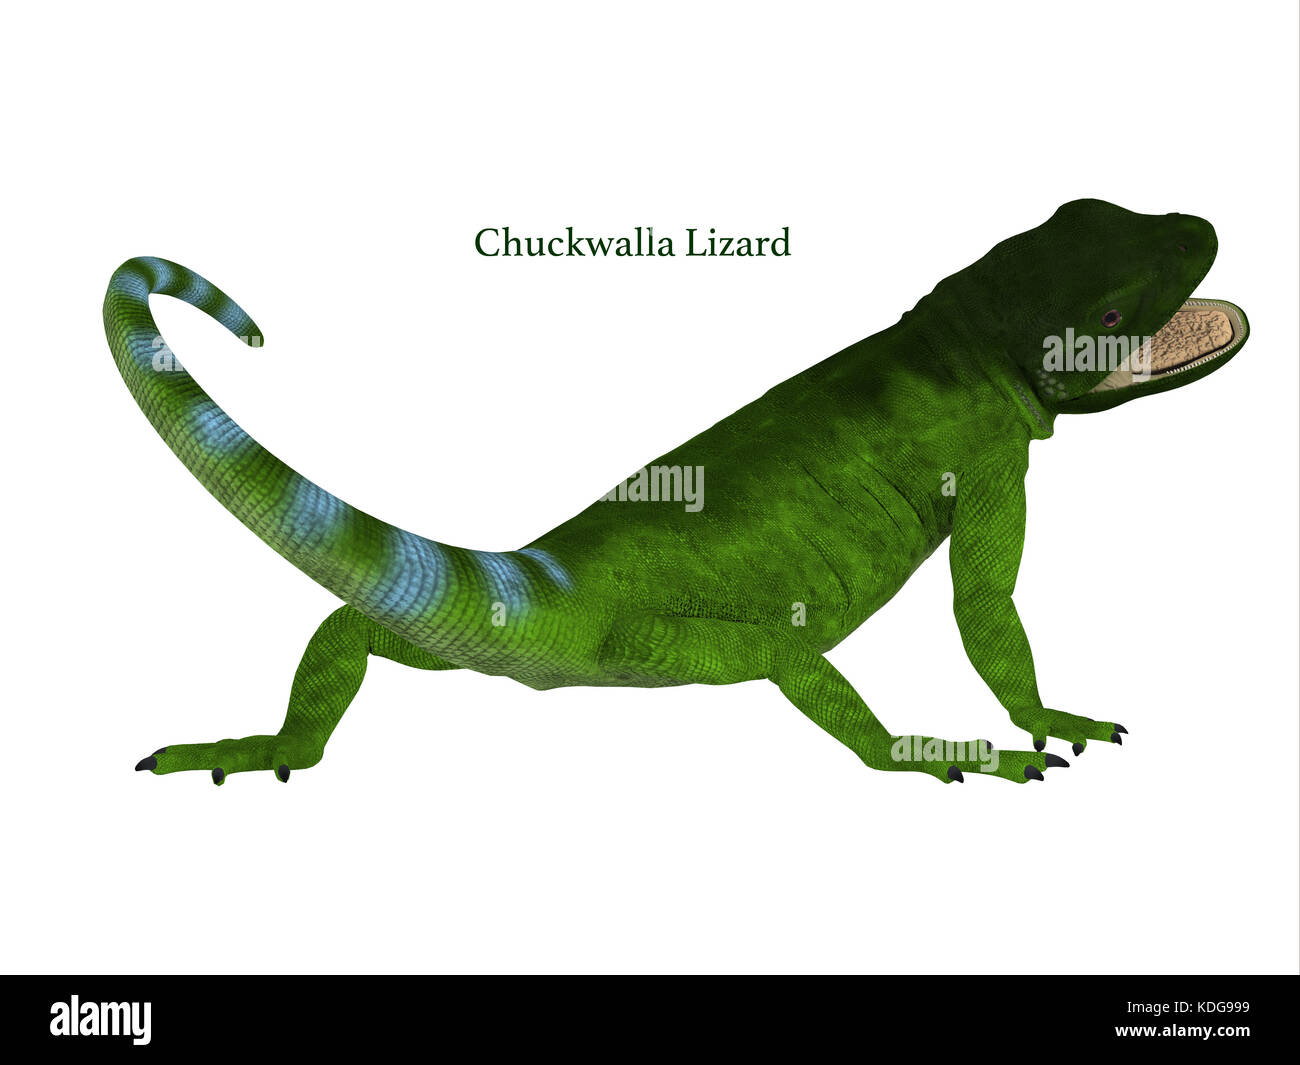 The Chuckwalla is a large lizard found primarily in arid regions of the southern United States and northern Mexico. - Stock Image